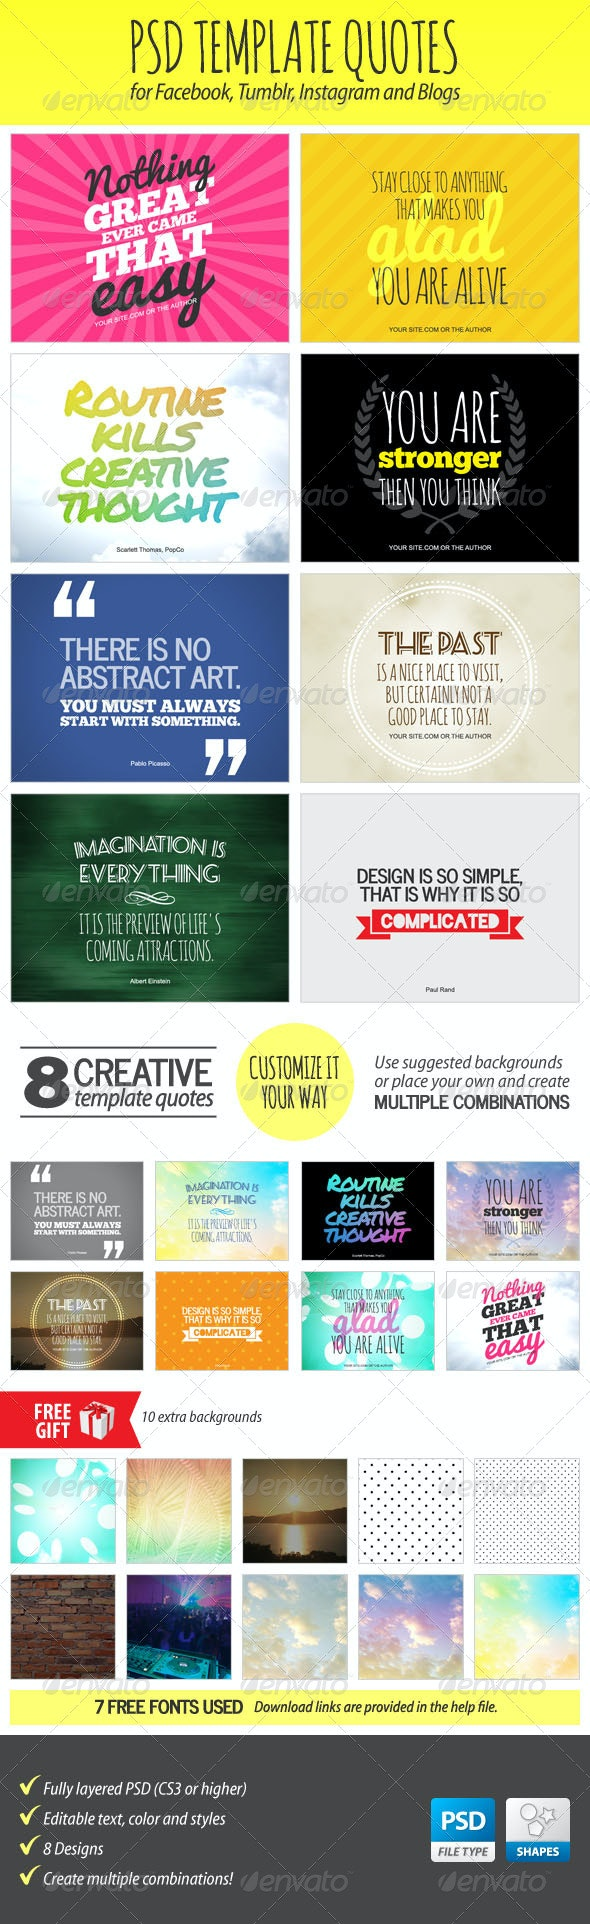 PSD Template Quotes - Miscellaneous Social Media